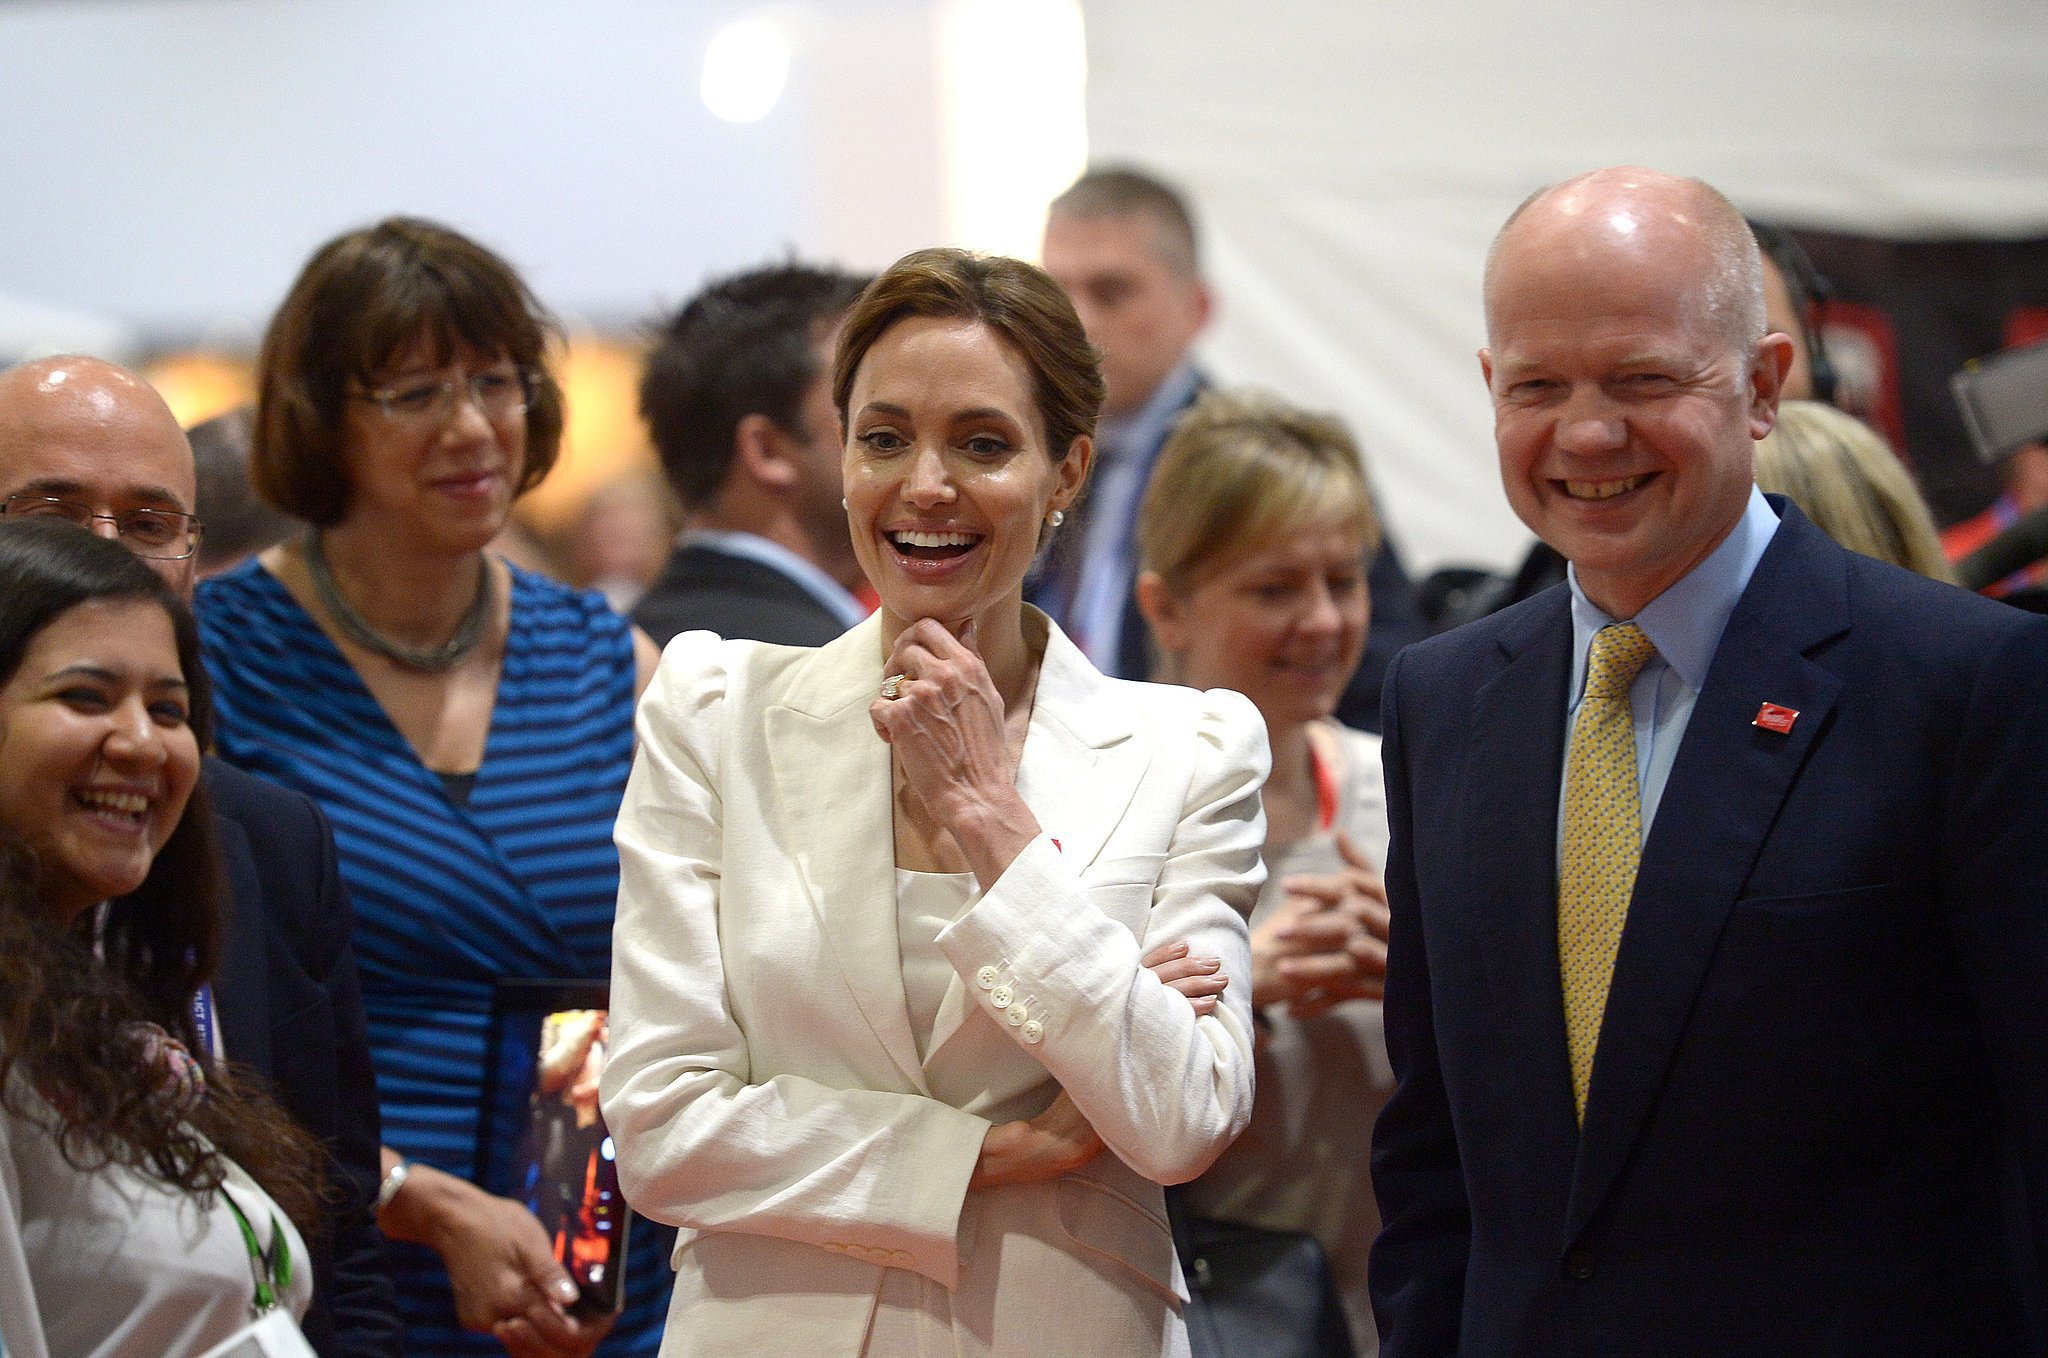 Angelina walked with William Hague to visit with attendees and speakers at the summit on Wednesday.